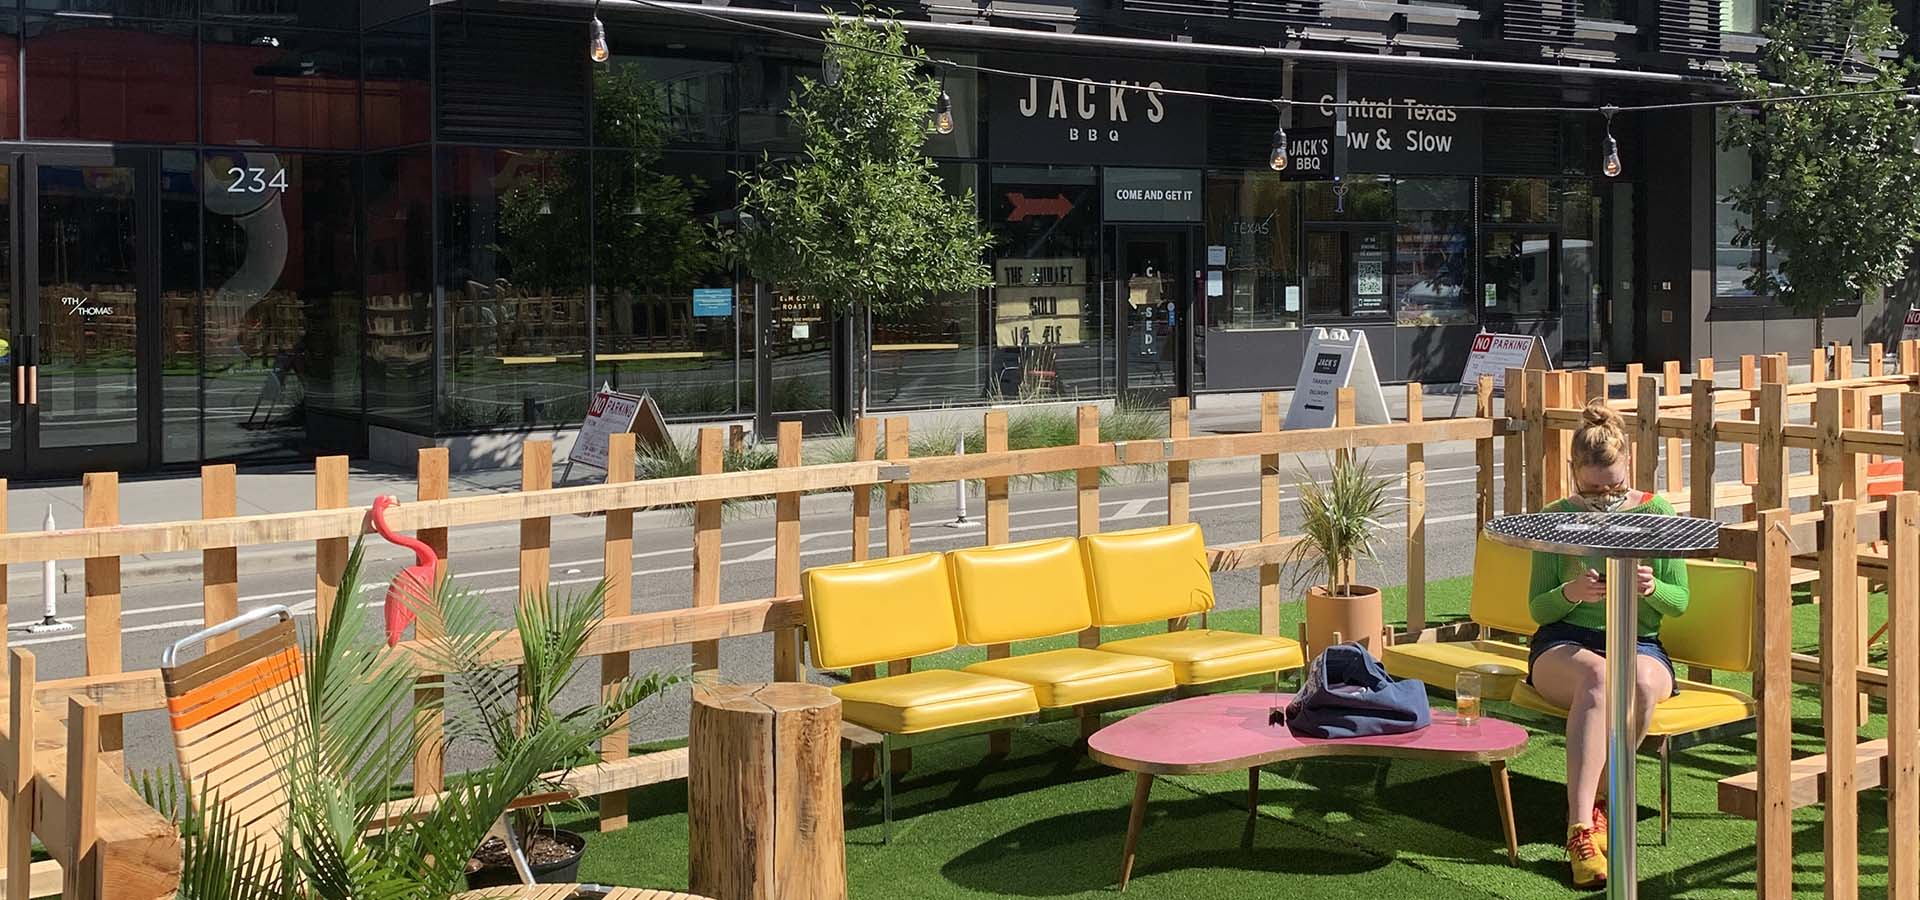 Outdoor street eatery set up with patio furniture